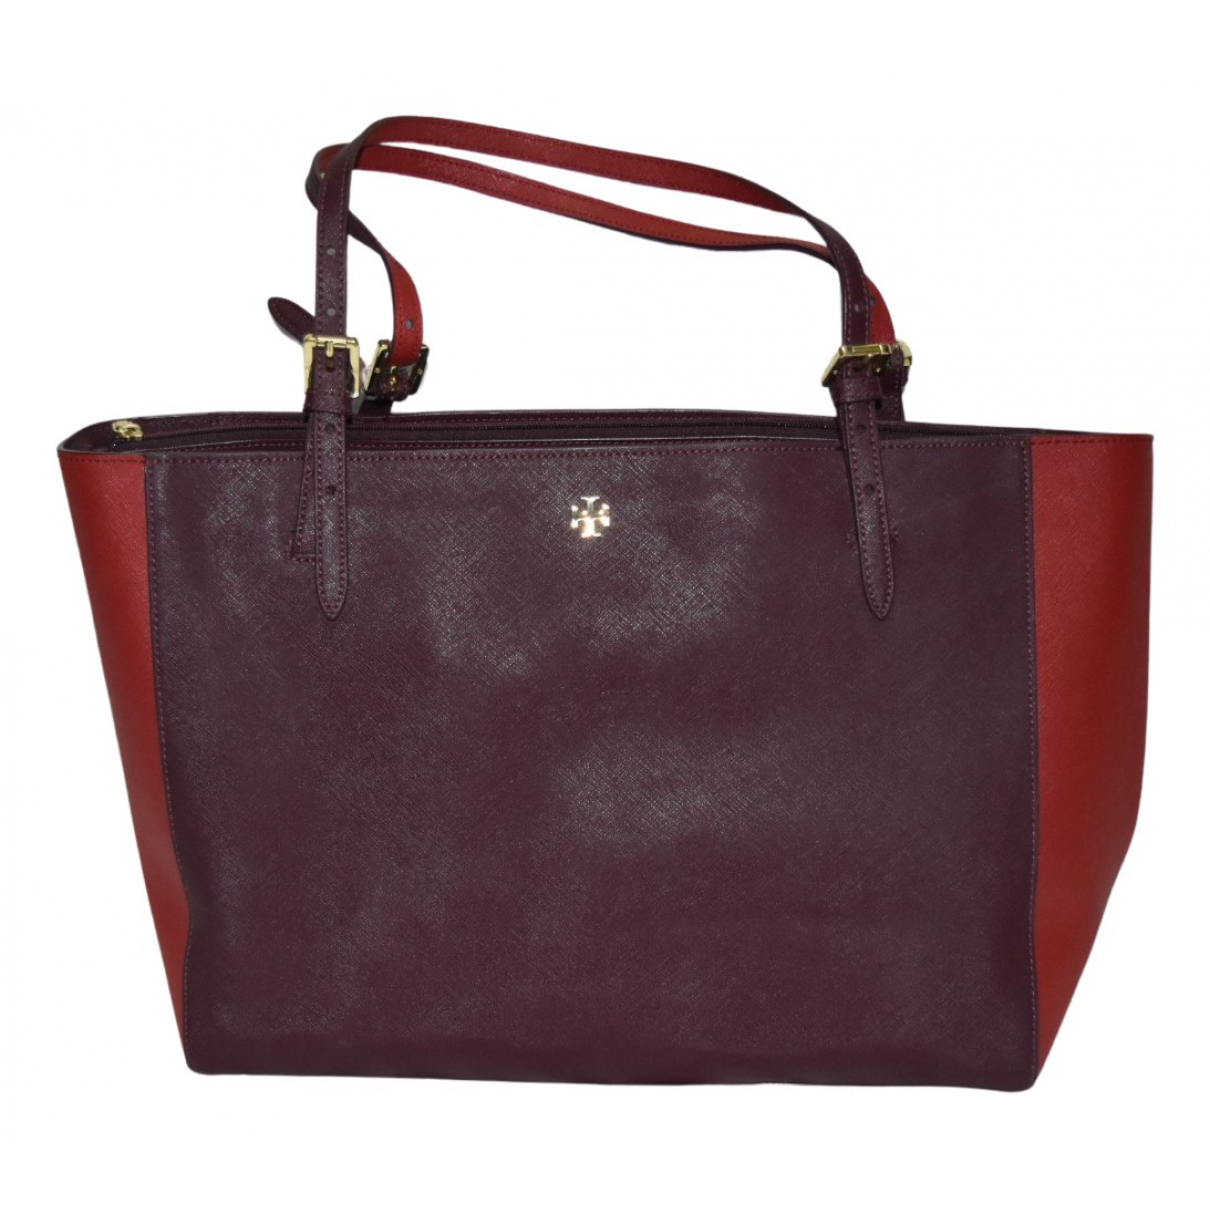 Tory Burch N Multicolour Leather handbag for Women N